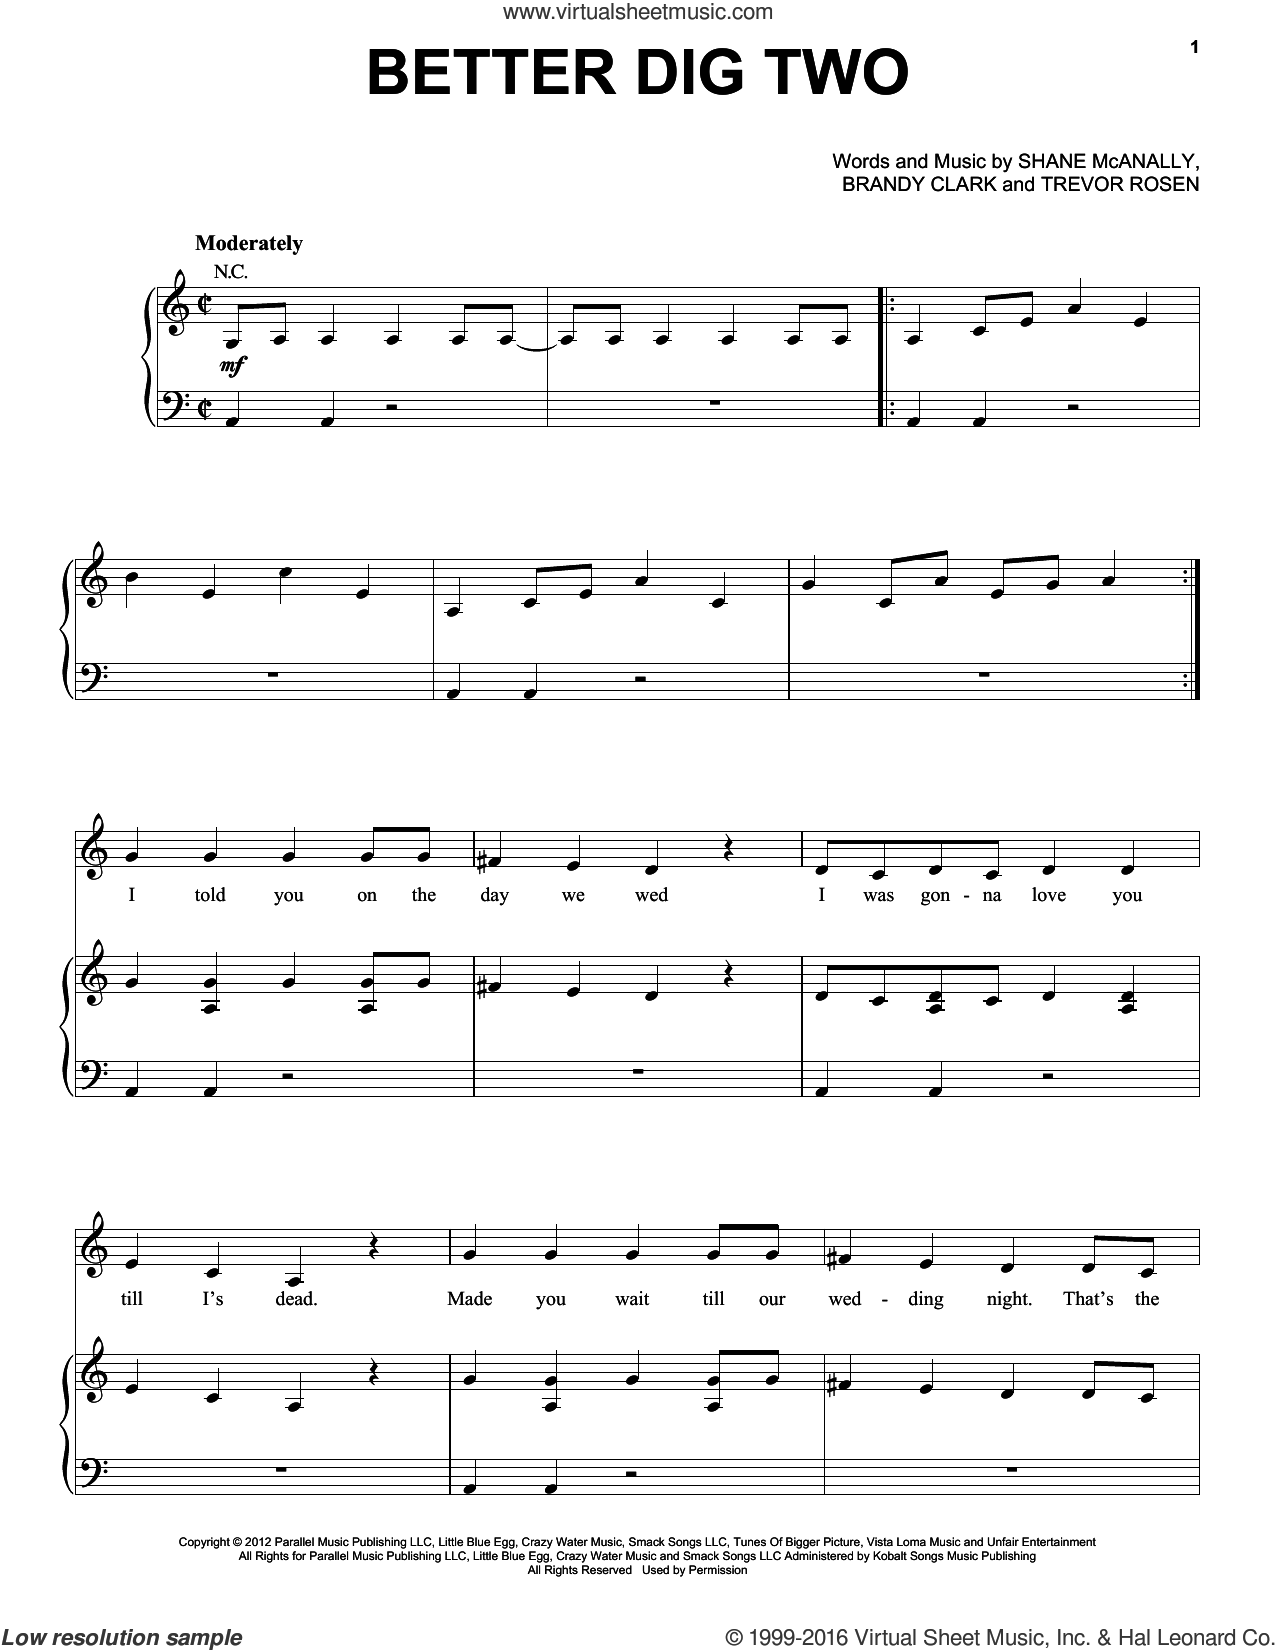 Better Dig Two sheet music for voice, piano or guitar by Trevor Rosen